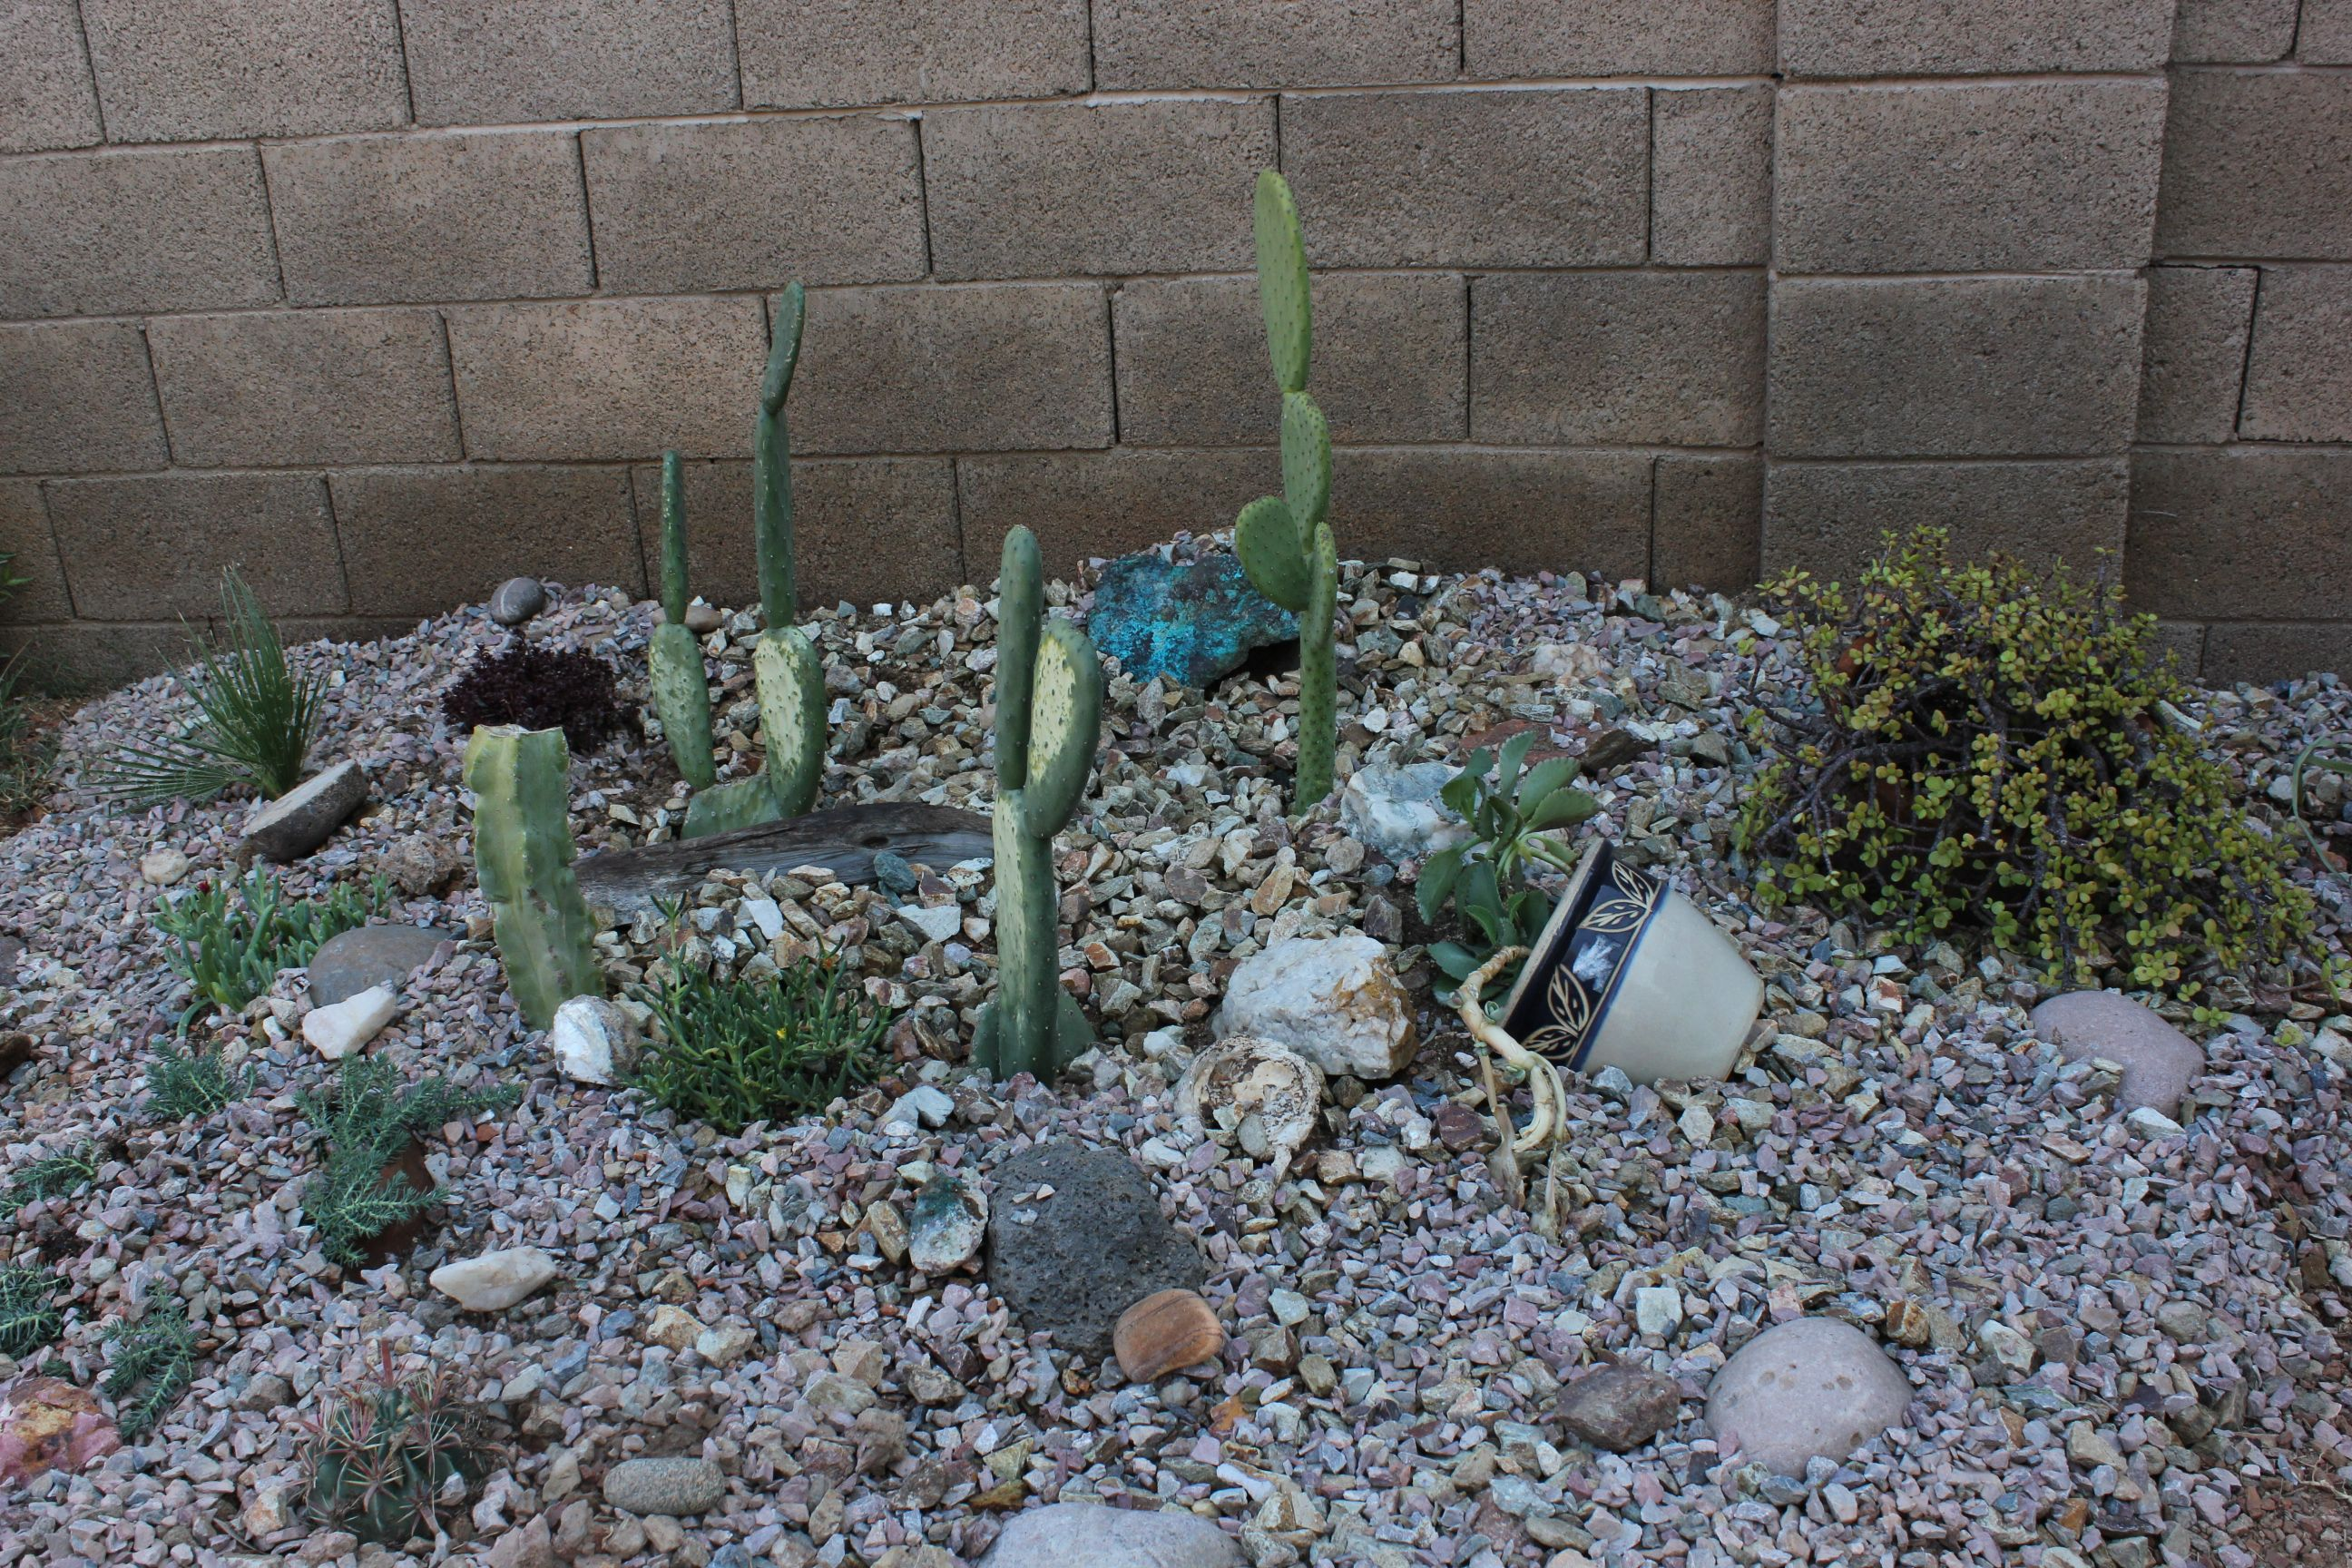 Building a cactus garden in the backyard